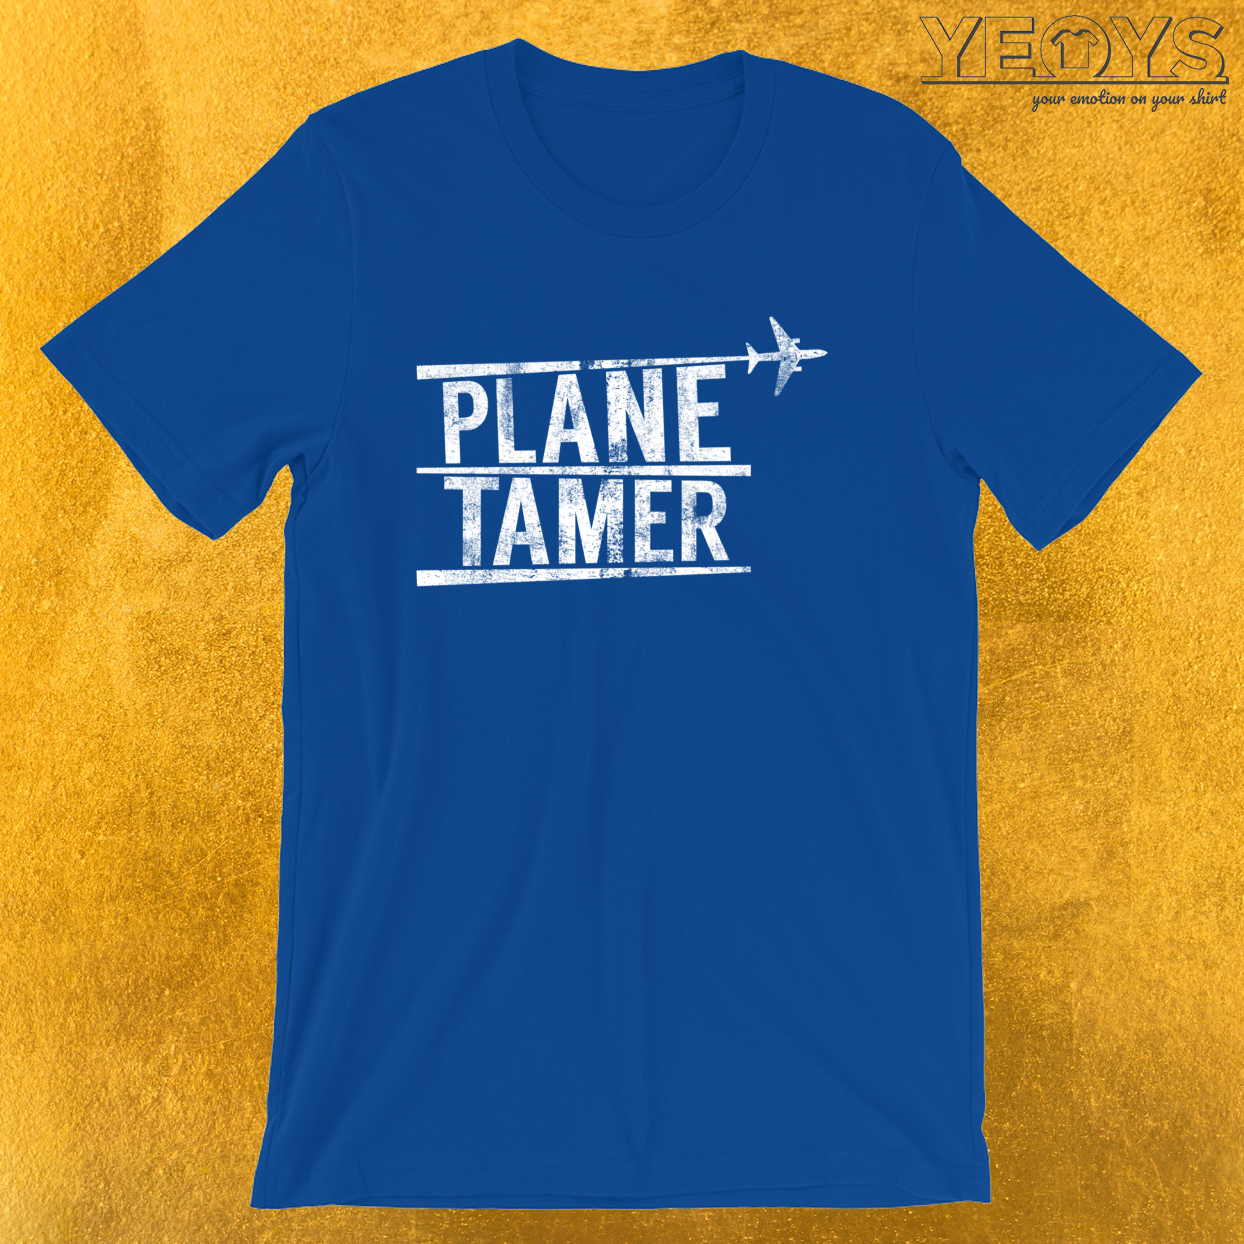 Plane Tamer – Funny Aviation Quotes Tee